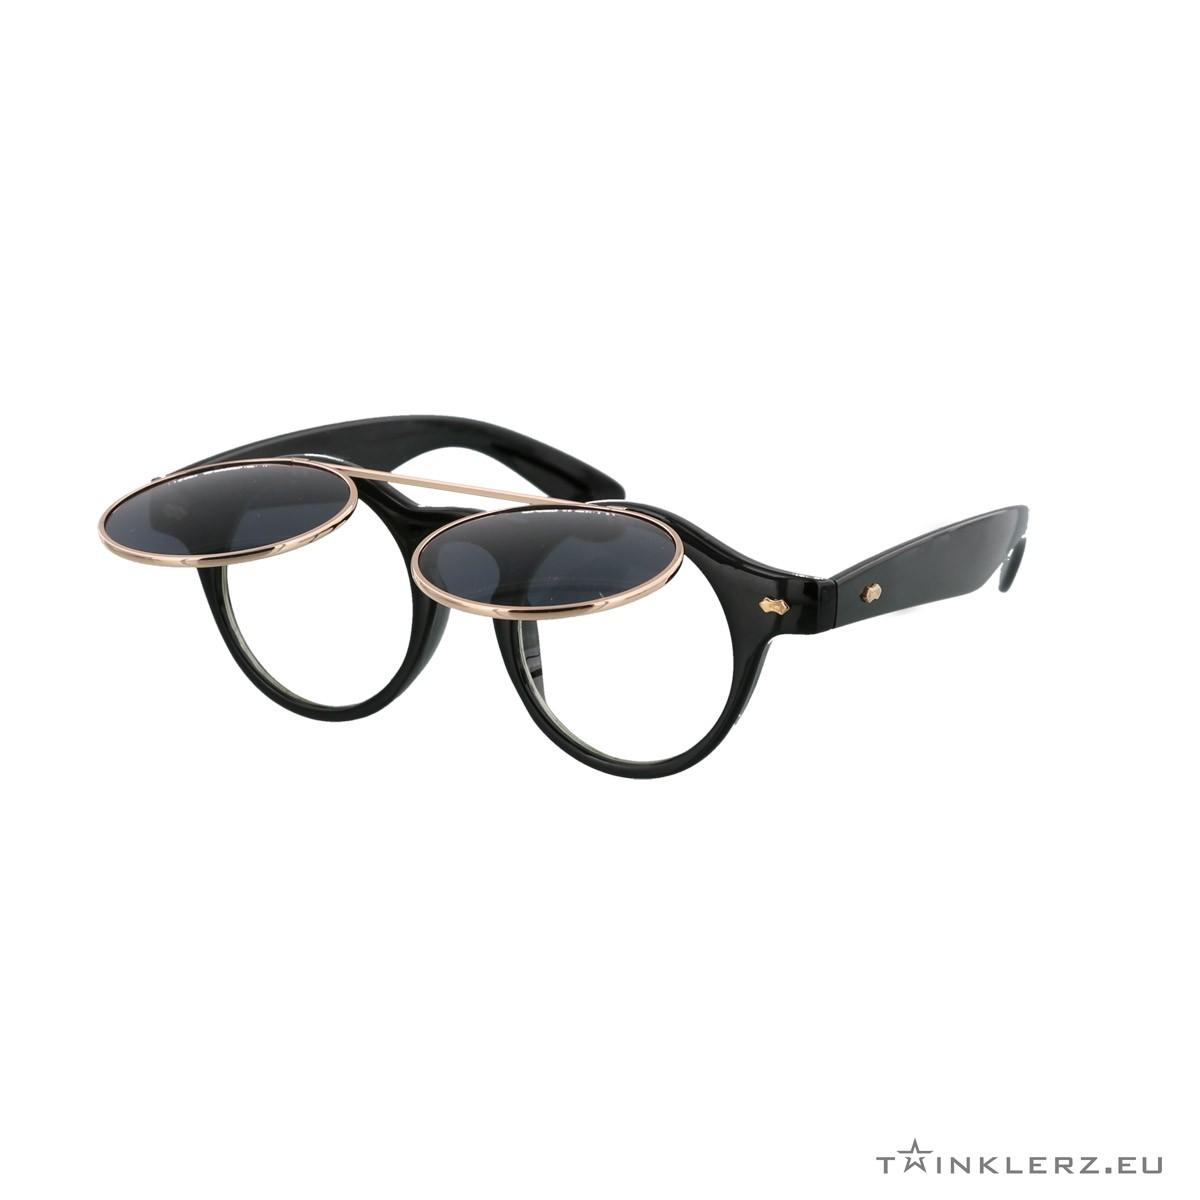 Black retro sunglasses with flaps